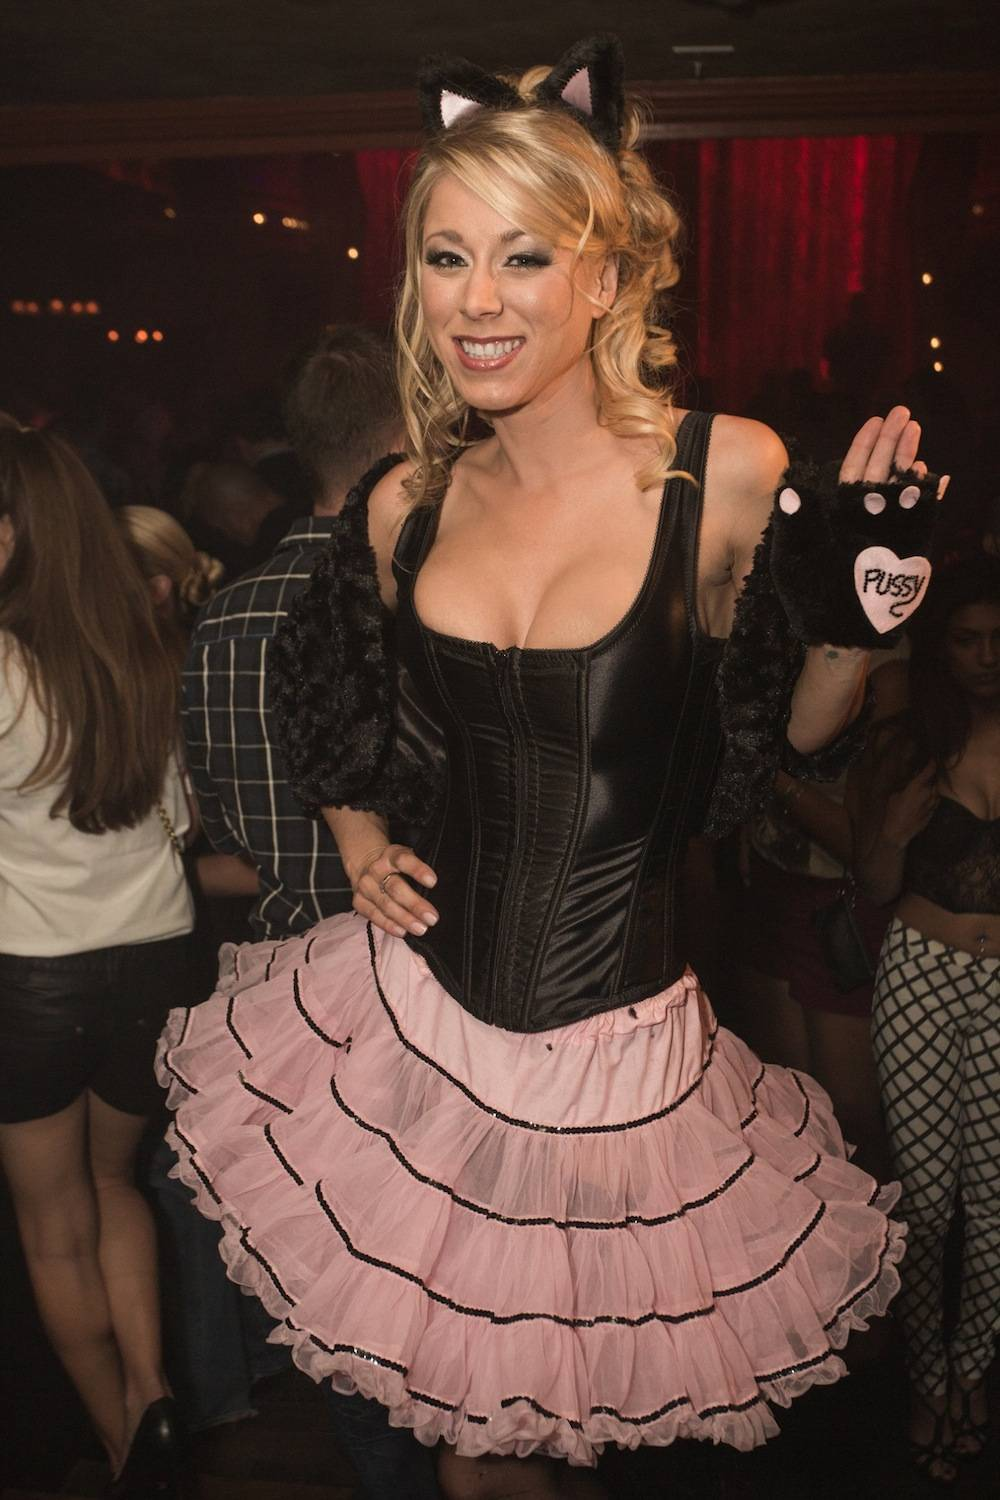 Katie Morgan at VIP table inside The ACT Nightclub